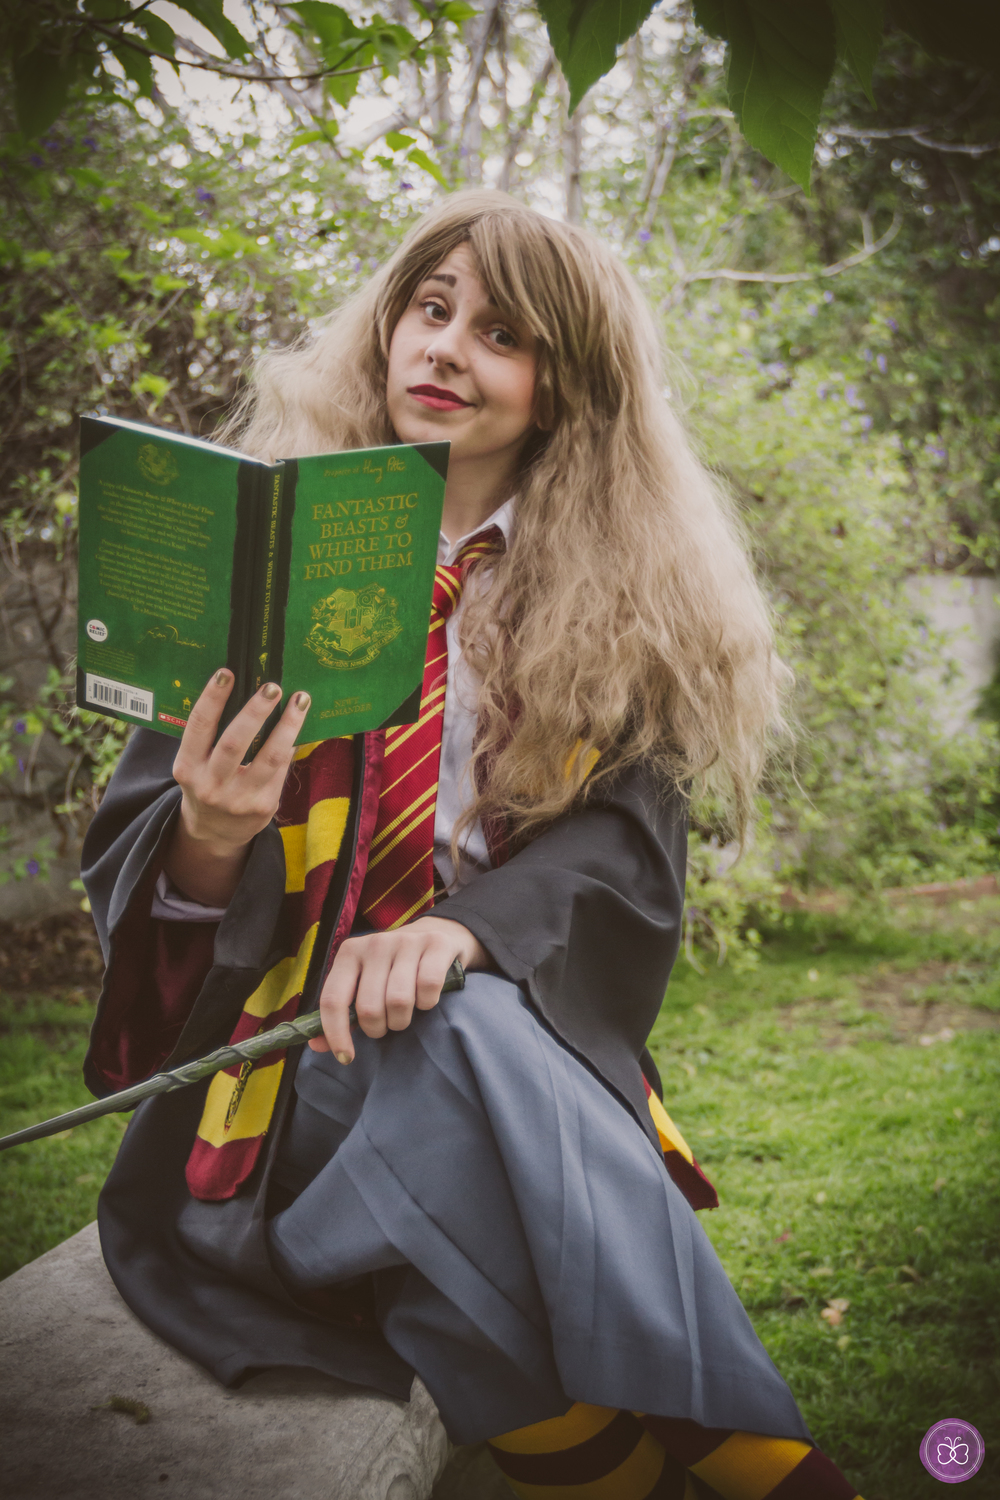 hermione harry potter hogwarts party wizard character los angeles (2 of 3).jpg